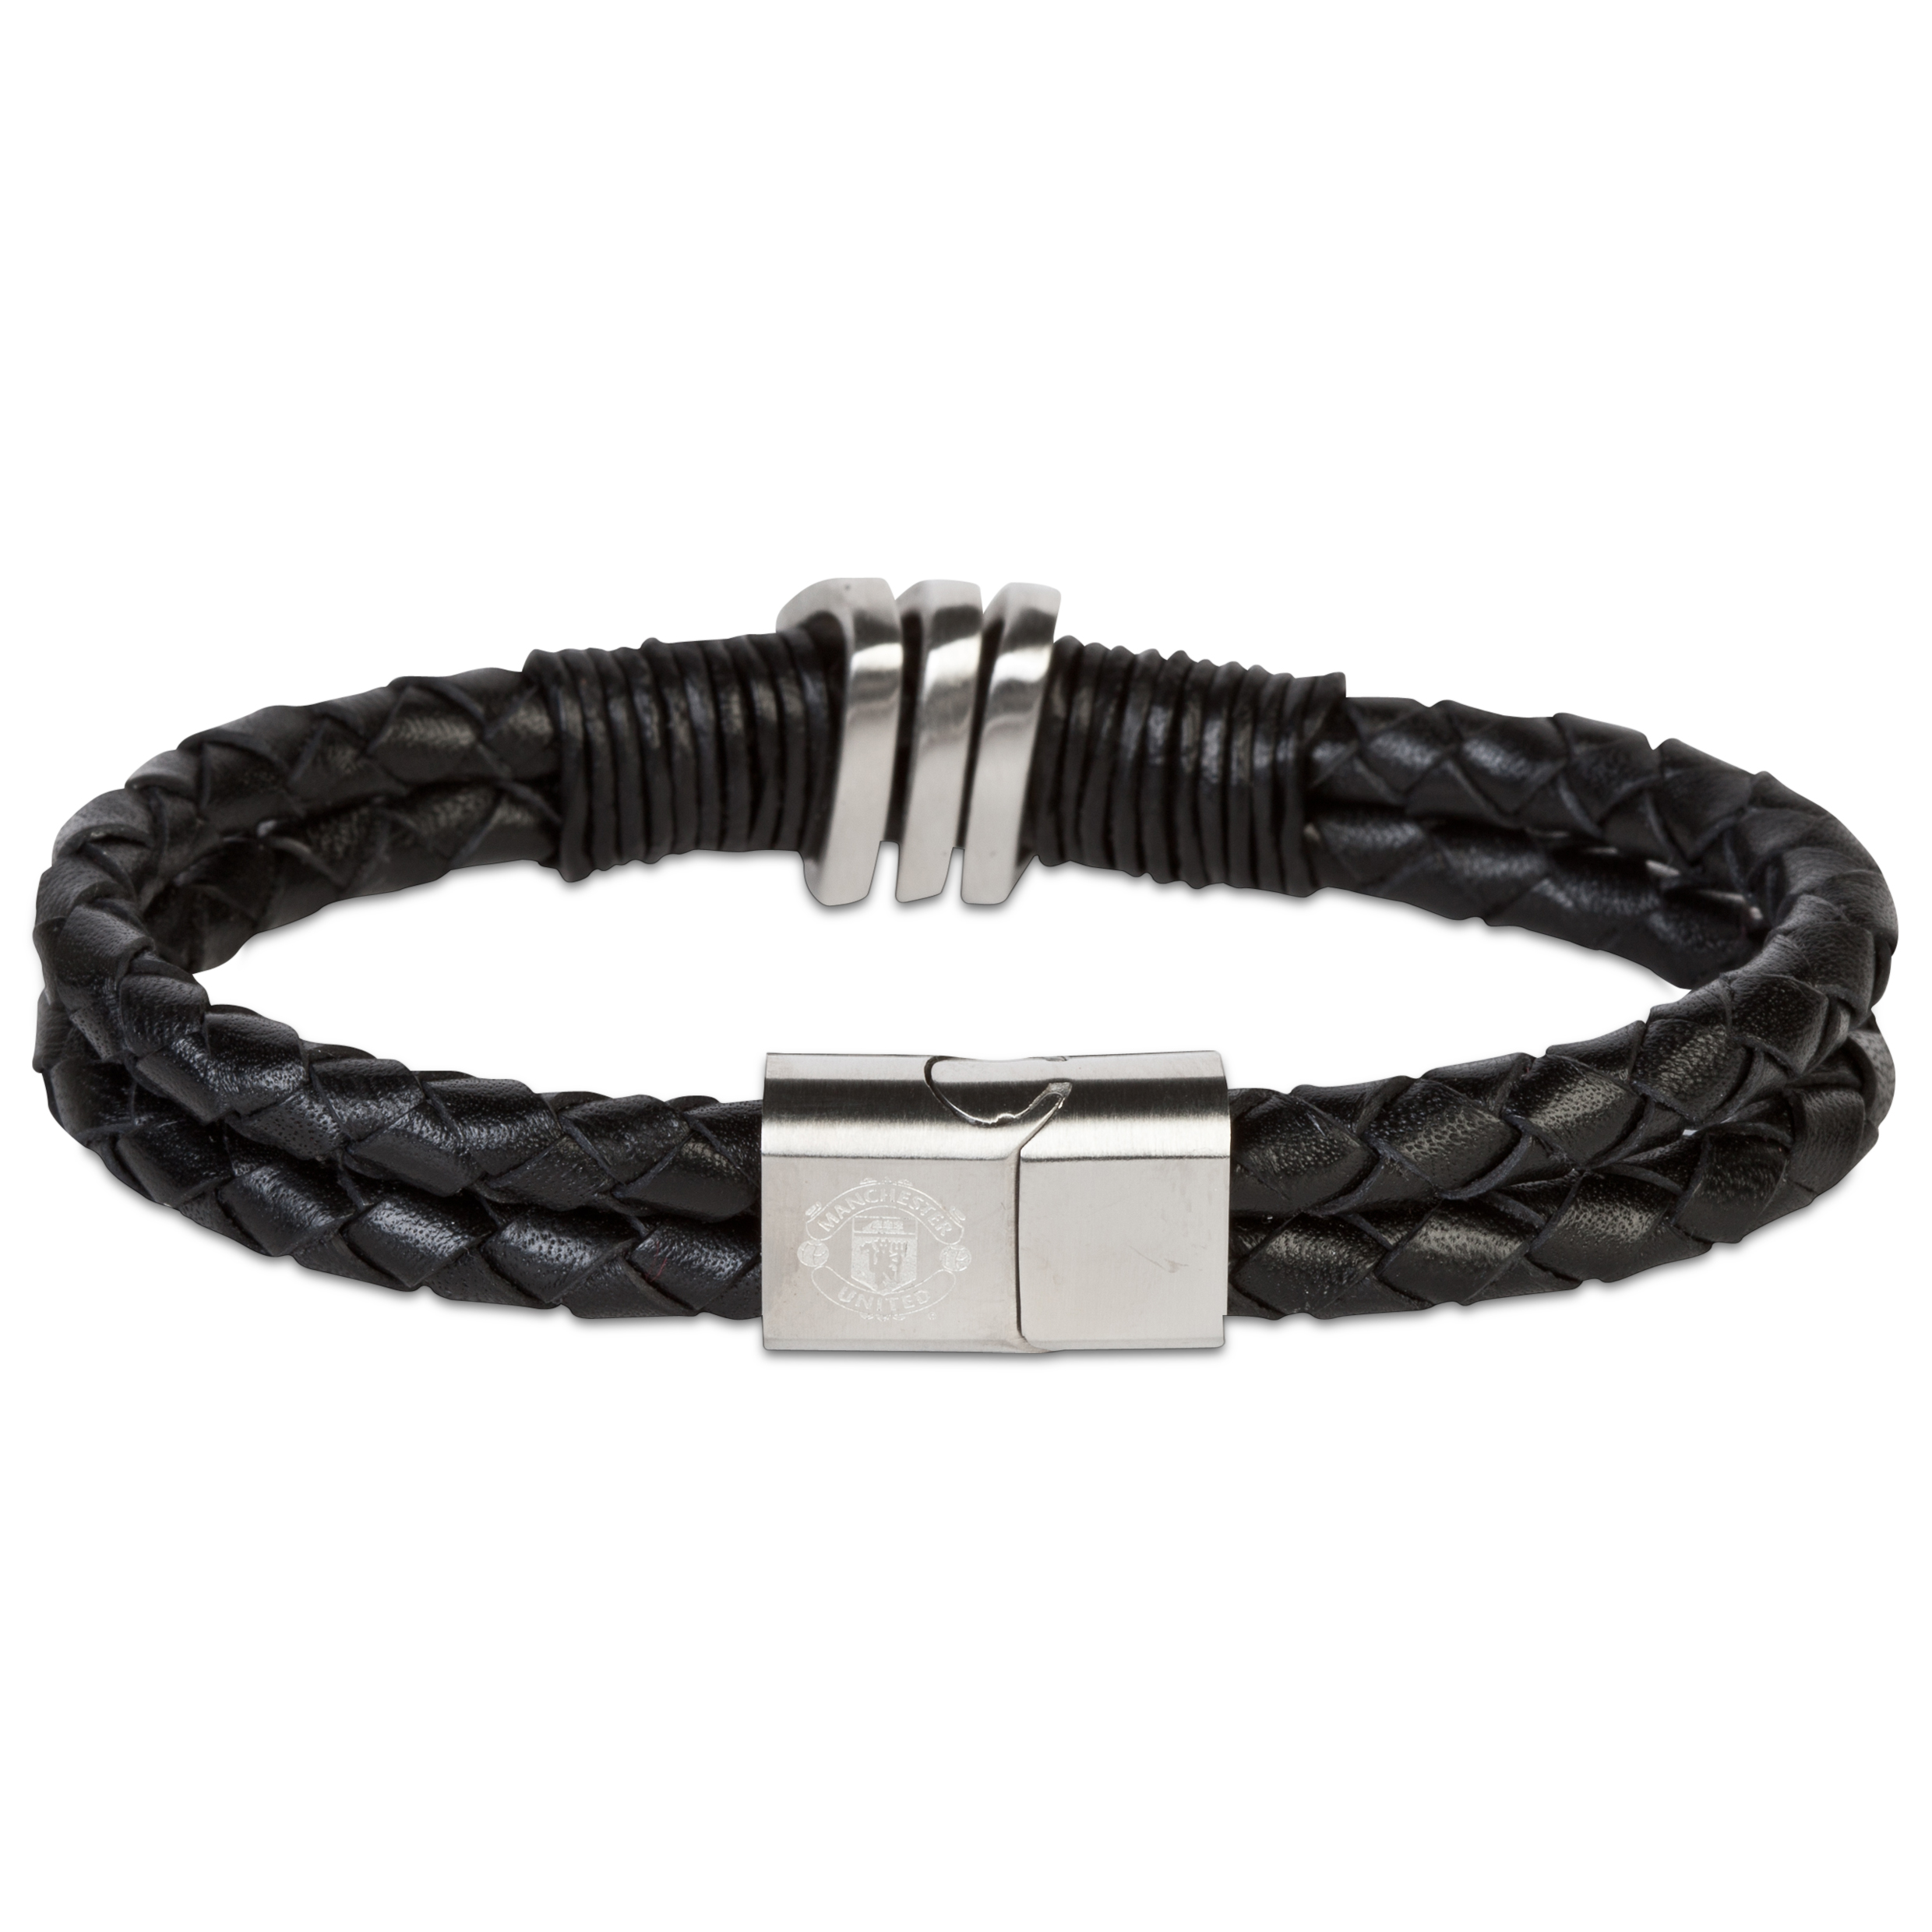 Manchester United Black Leather Bracelet - Stainless Steel